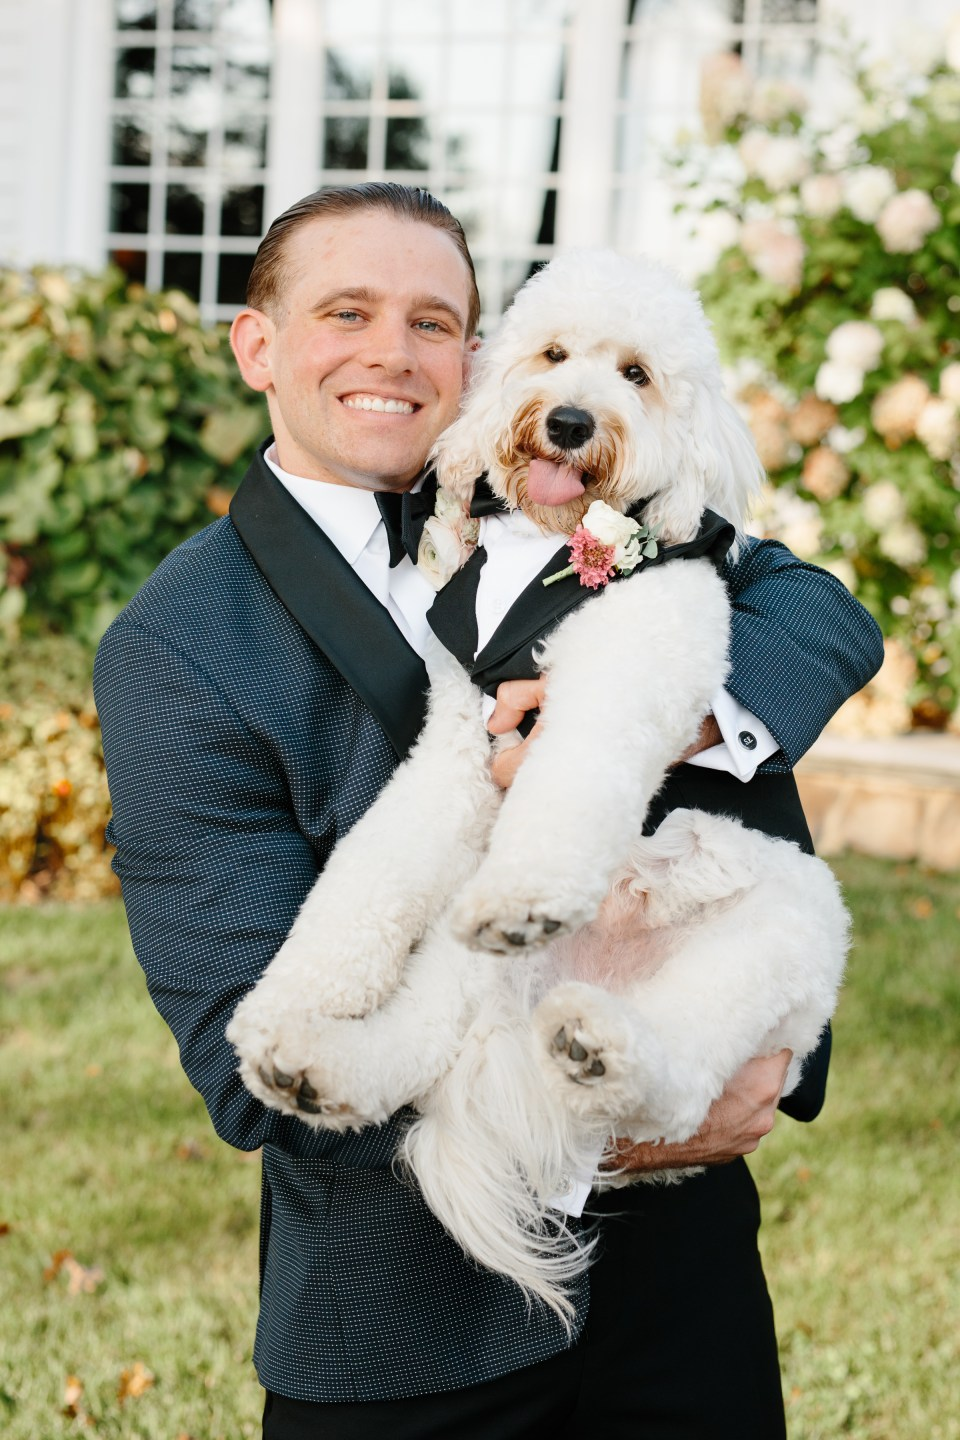 groom with dog photographed by Ashley Mac Photographs in New Jersey